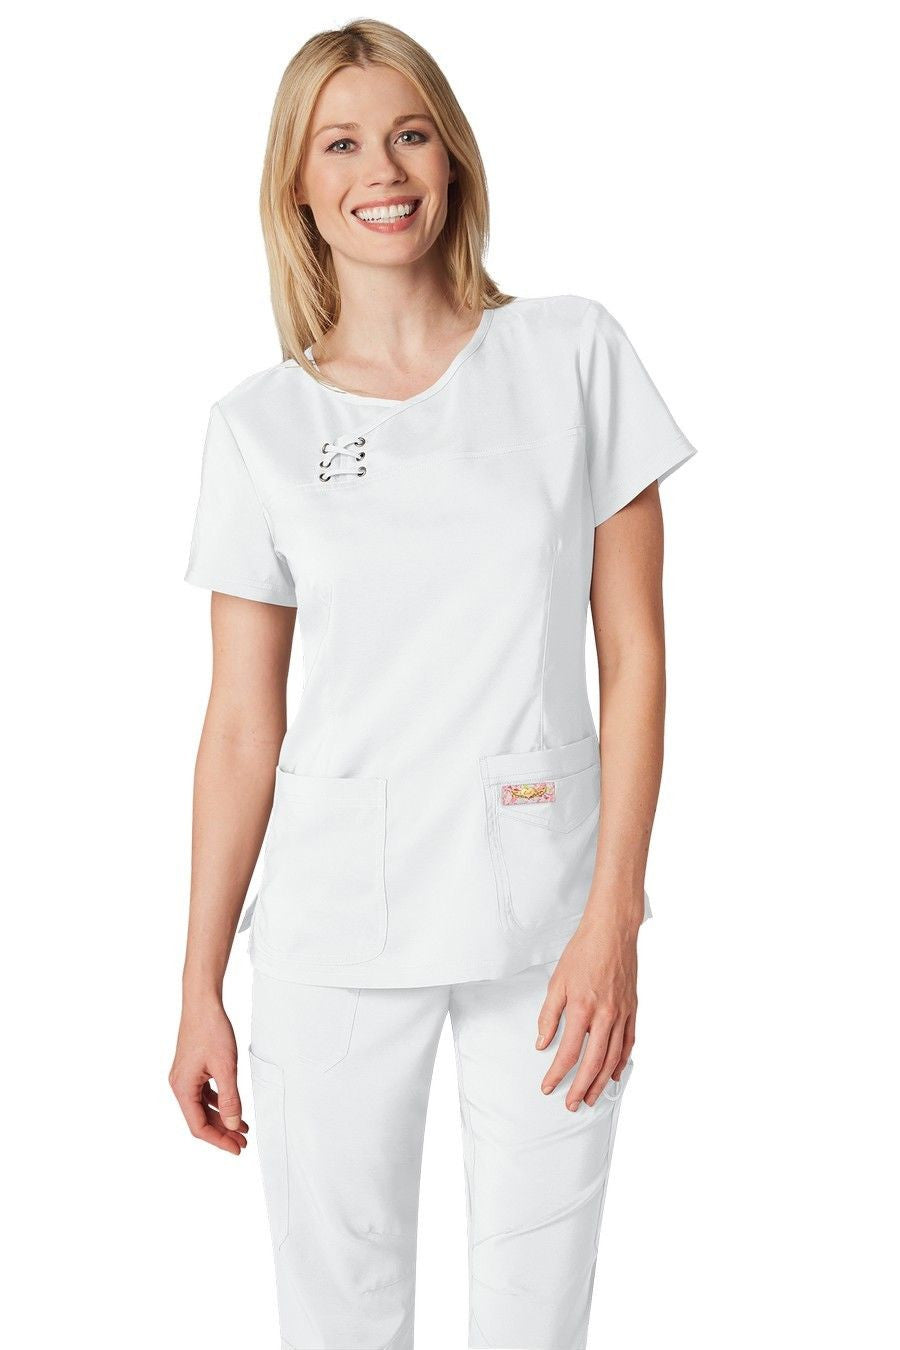 Koi Tech Serena Scrub Top (White)